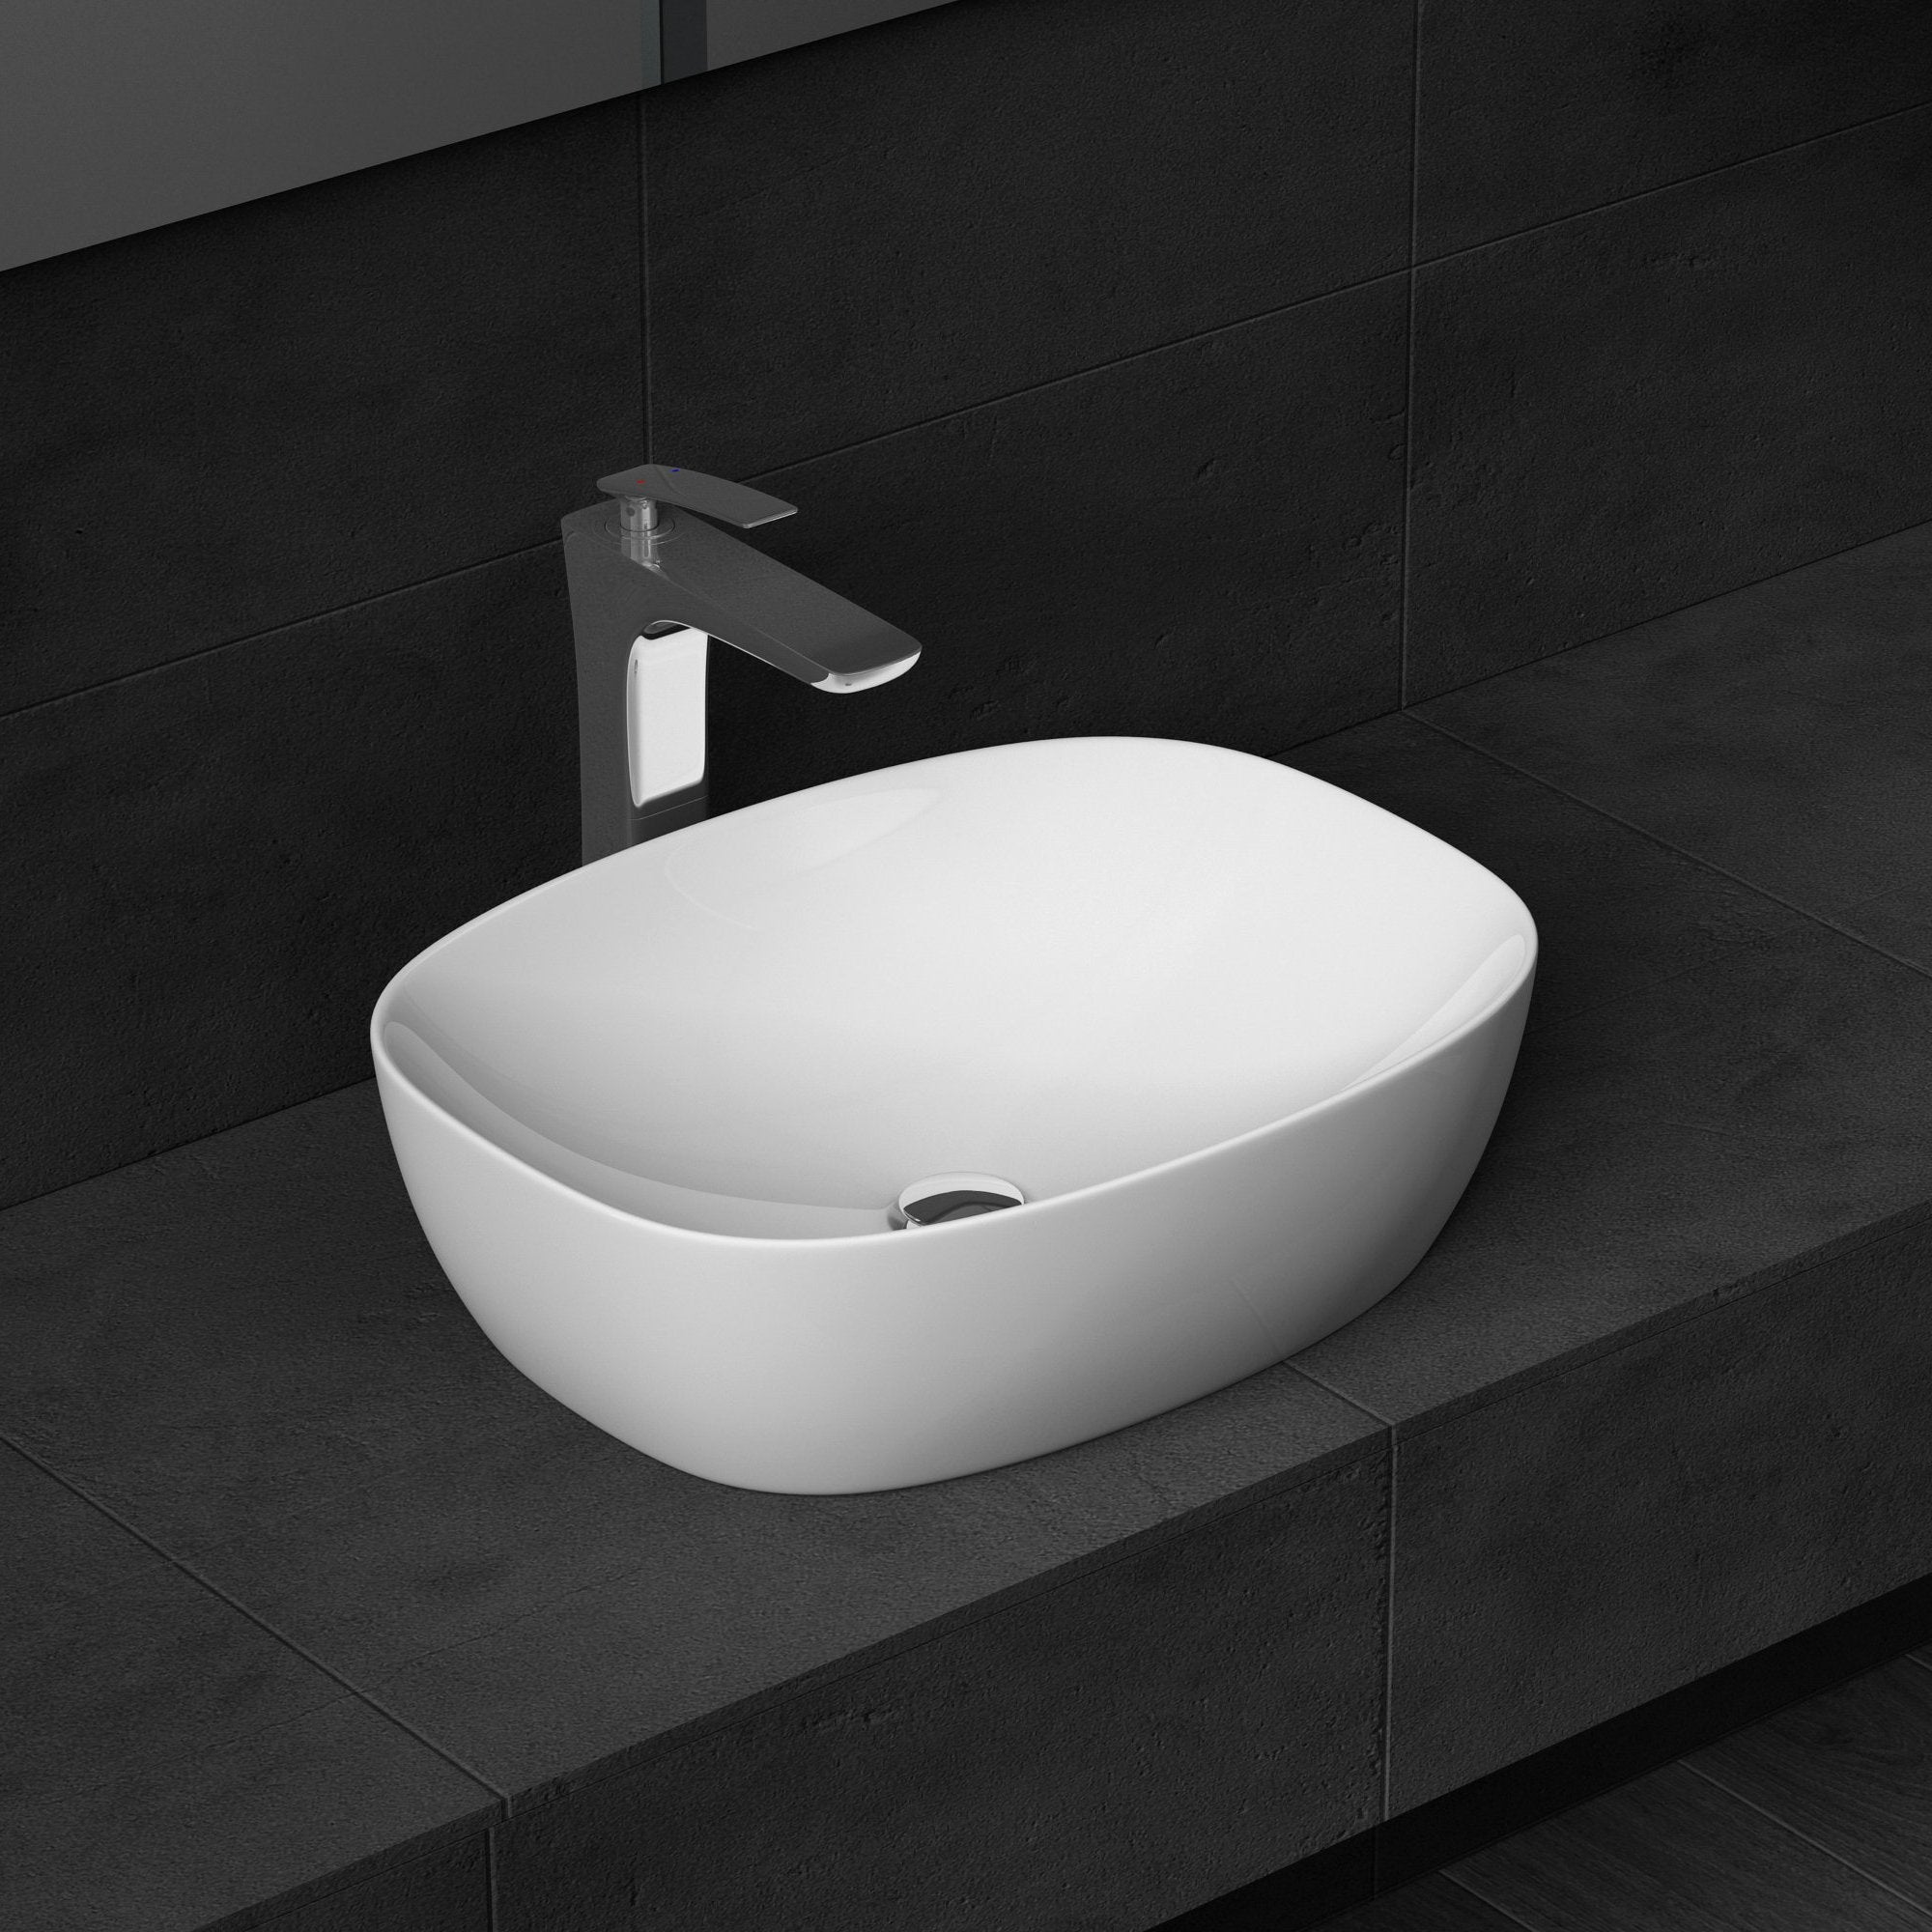 New Design Counter Top Ceramic Bathroom Basin Durovin Bathrooms Uk